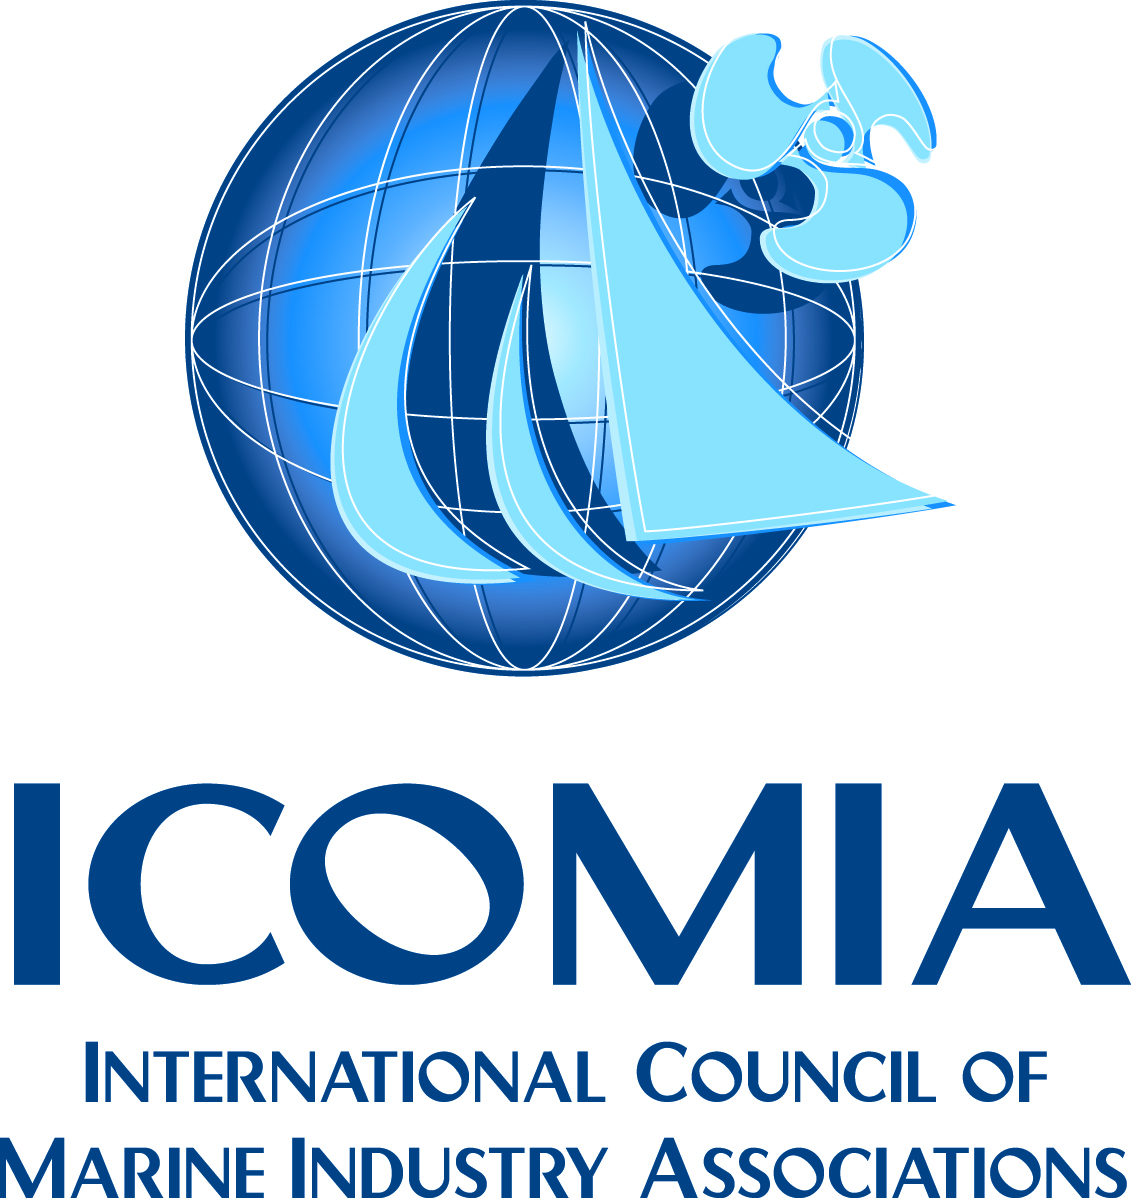 International Council of Marine Industry Associations ICOMIA logo